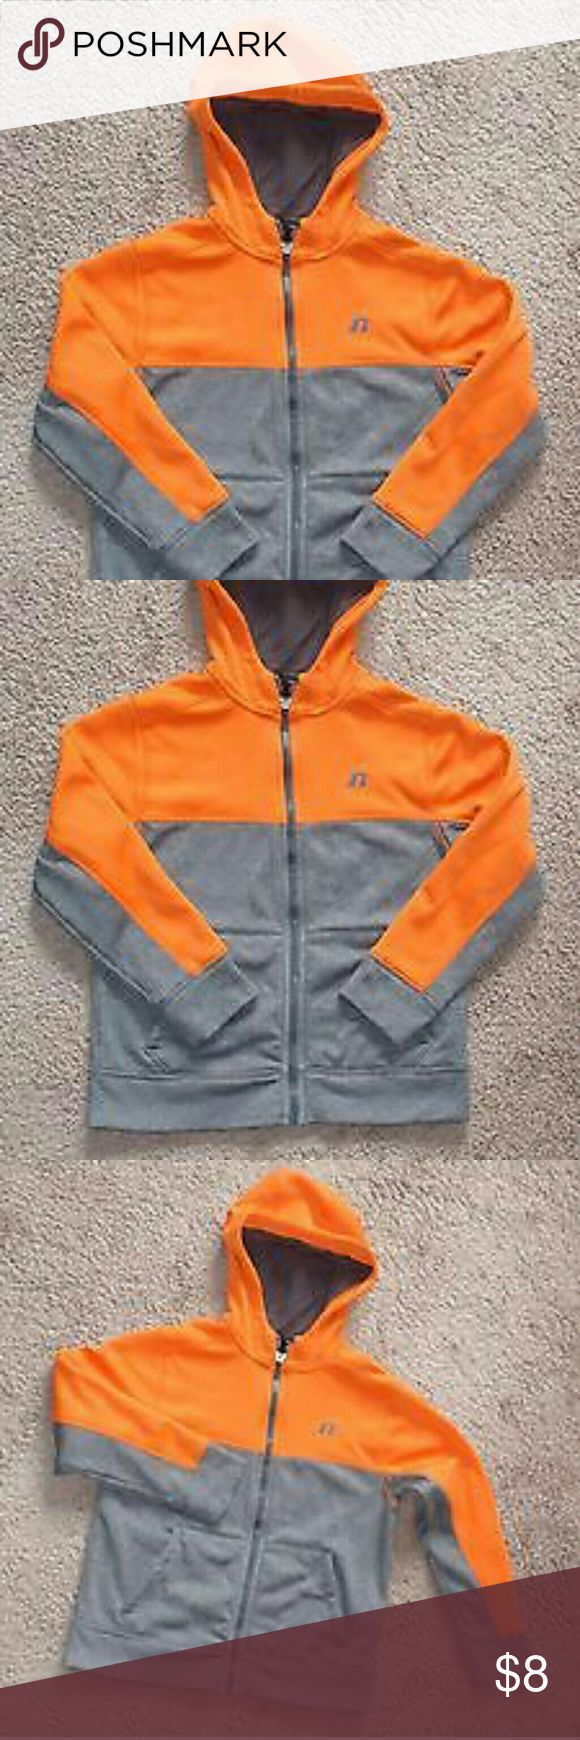 "Boys Russell Athletic Hoody Orange Gray Fleece Zip Used condition From the original owner. Shows minimal wear from normal use.?   Size tag was removed but it was size M, will fit 8 to 10 years old boys.   Read the measurements carefully to make sure it fits your Child.??   All measurements are taken with the jacket laying flat.  From pit to pit is 18"" inches  From back of neck to bottom?hem?20 1/2"" inches  Sleeves 18 1/2"" inches Jackets & Coats"